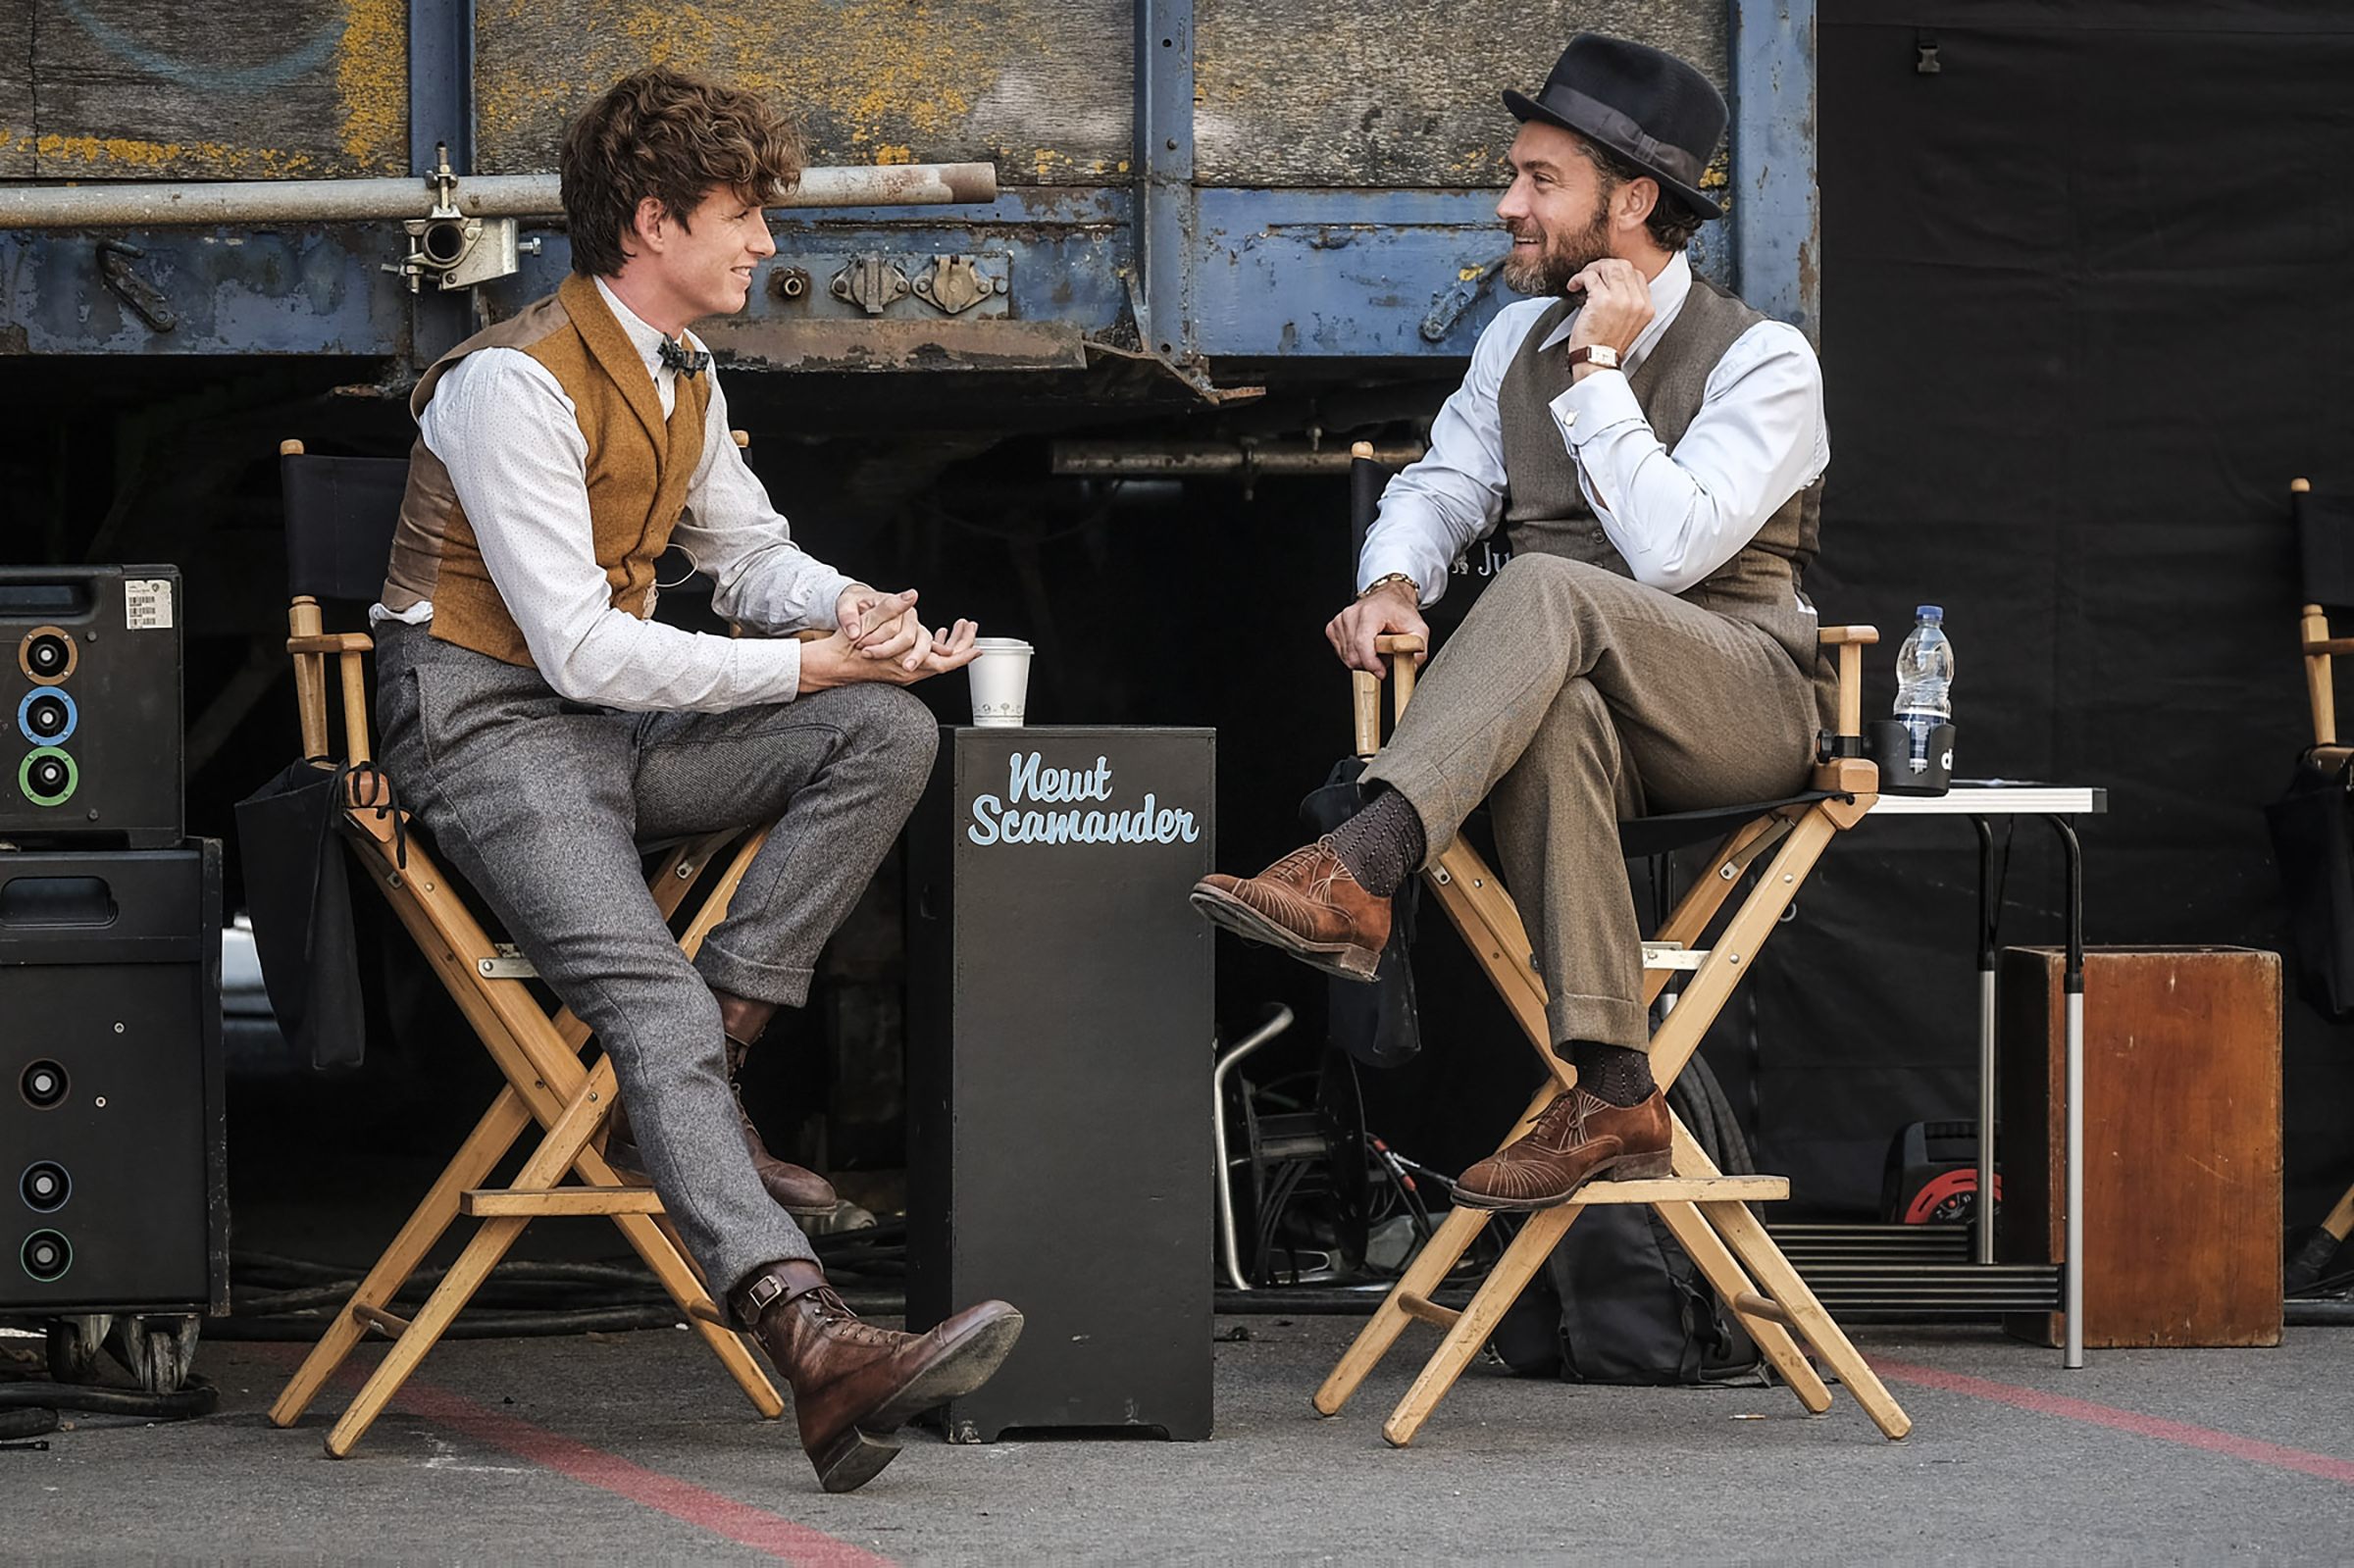 Eddie Redmayne and Jude Law behind the scenes of Fantastic Beasts: Crimes of Grindelwald